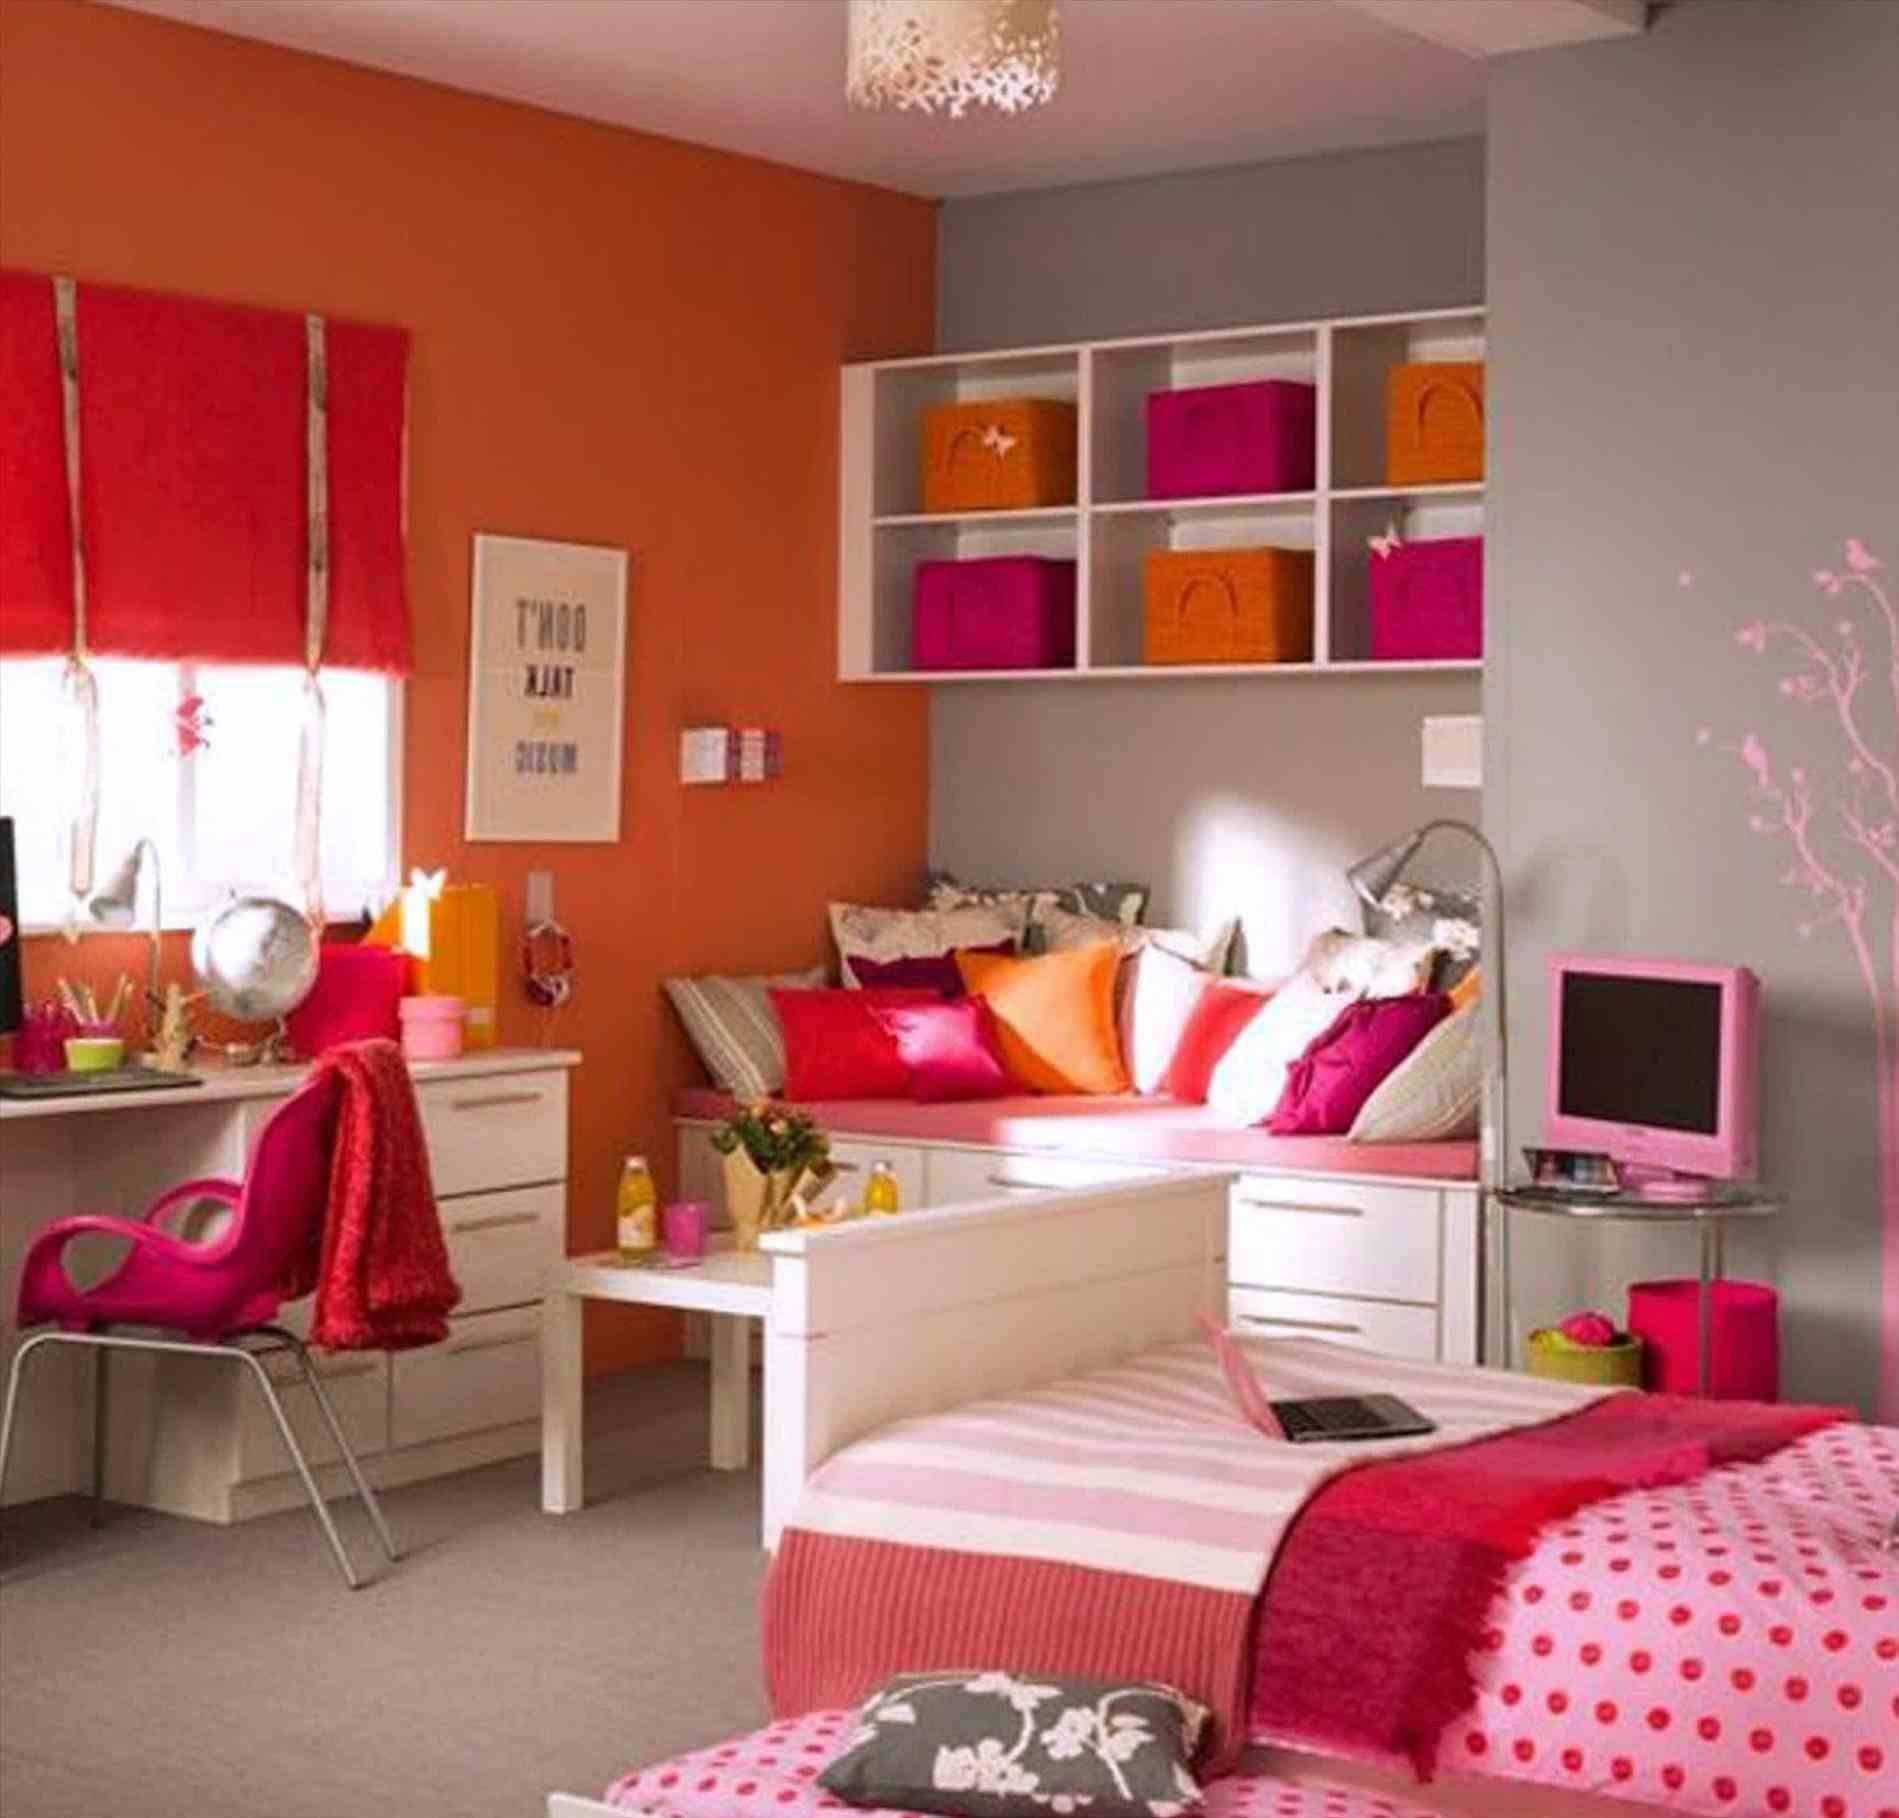 Old Girl Bedrooms: Small Bedroom Design Ideas For Teenage Girls